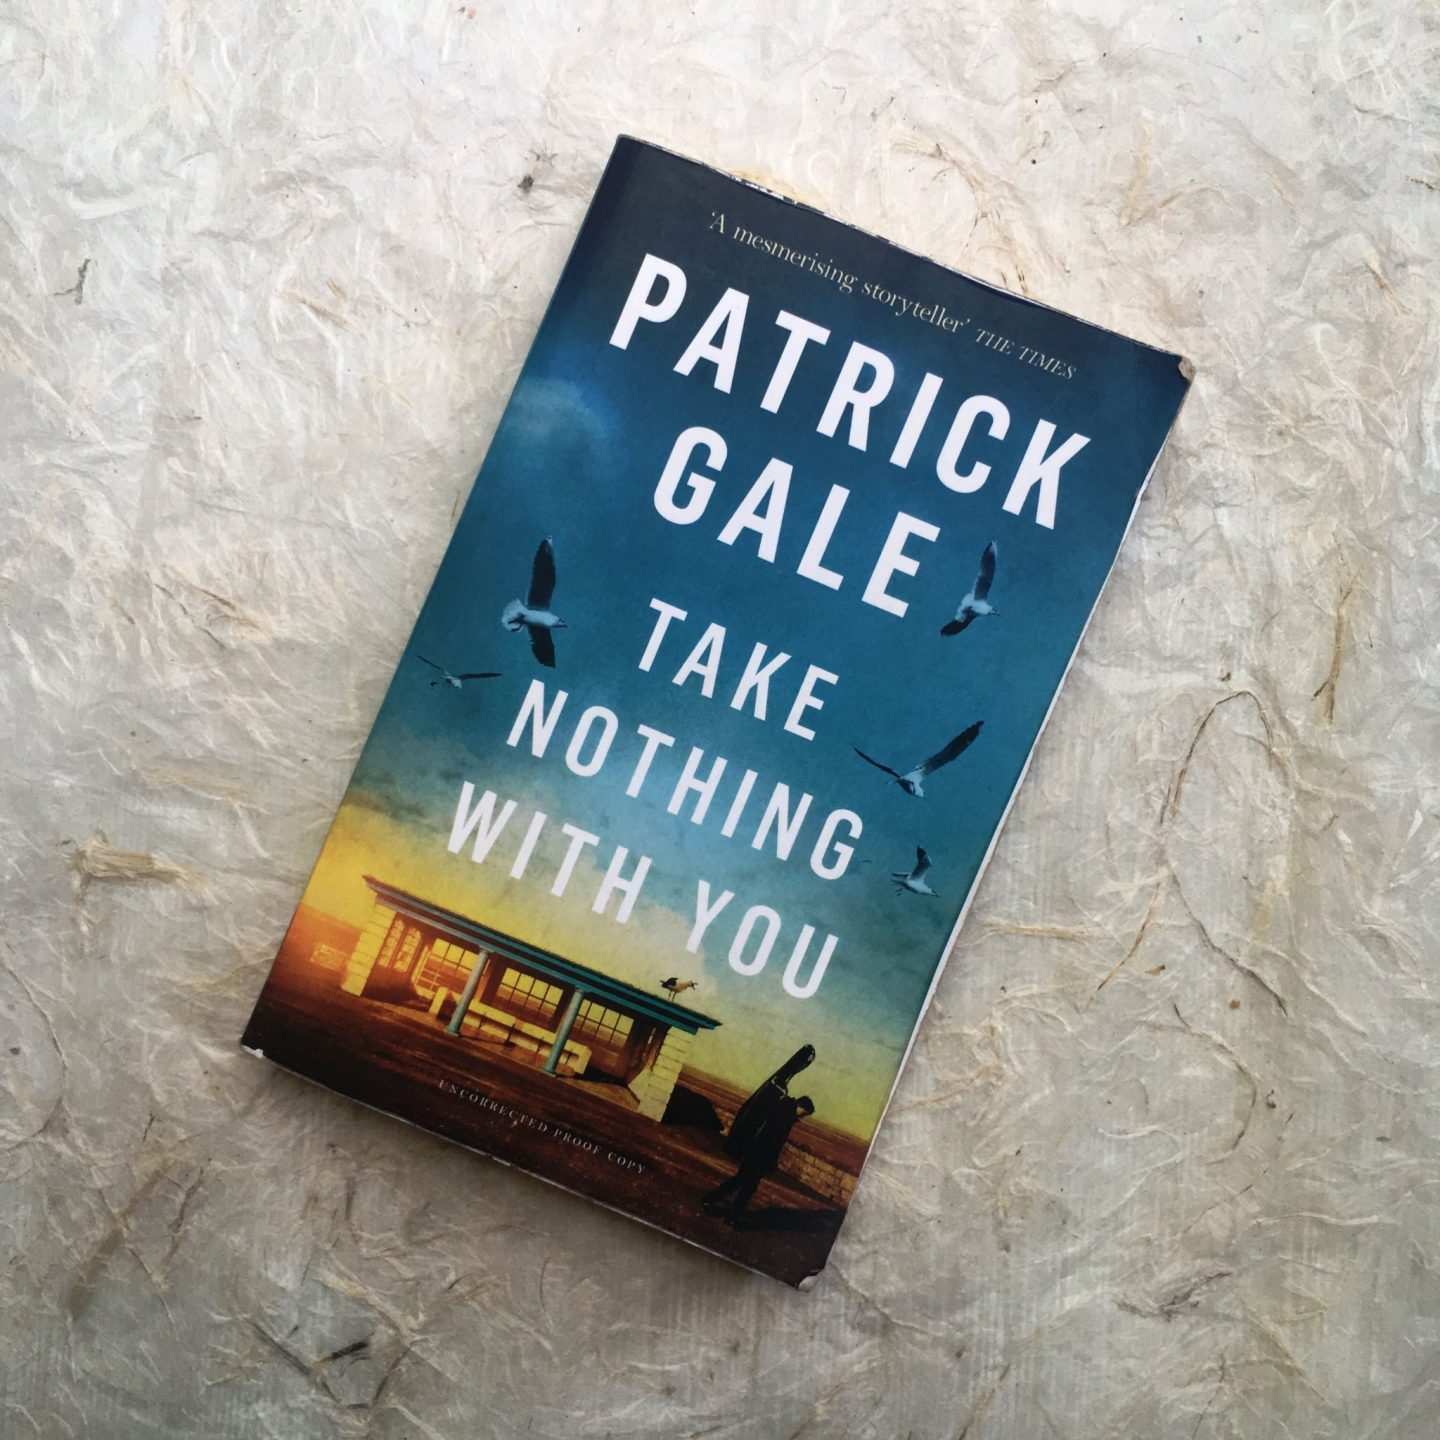 Take Nothing With You by Patrick Gale: beautifully symbolic